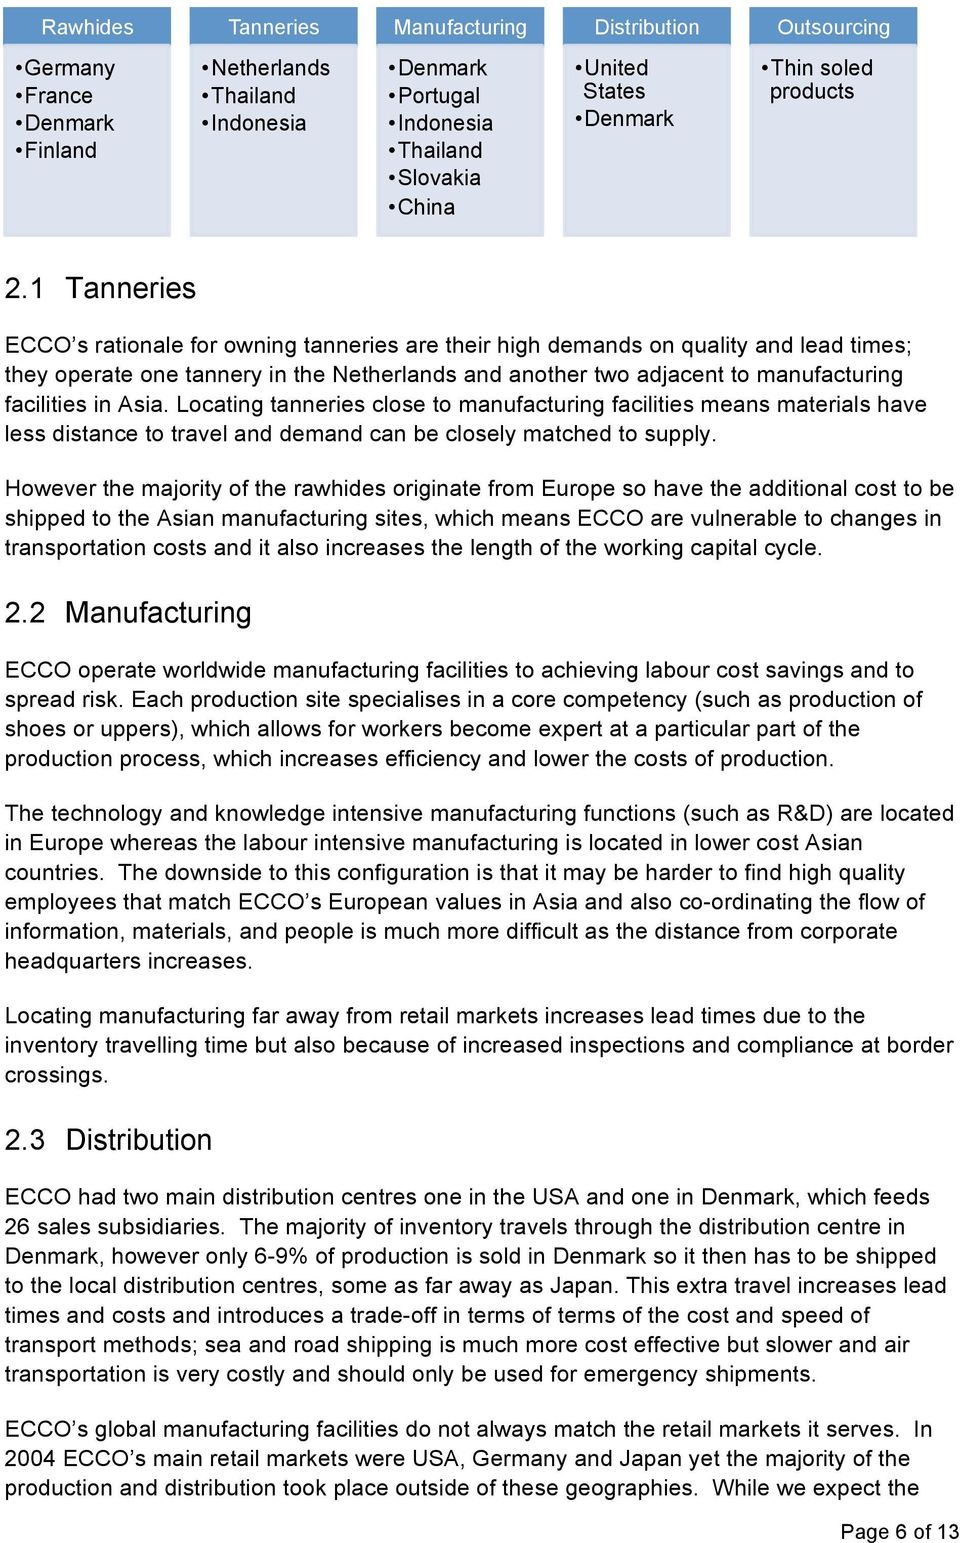 ecco a s global value chain management The fully integrated value chain tied up significant capital and management attention in tanneries and production facilities, which could have been used to strengthen the branding and marketing of ecco's shoes.